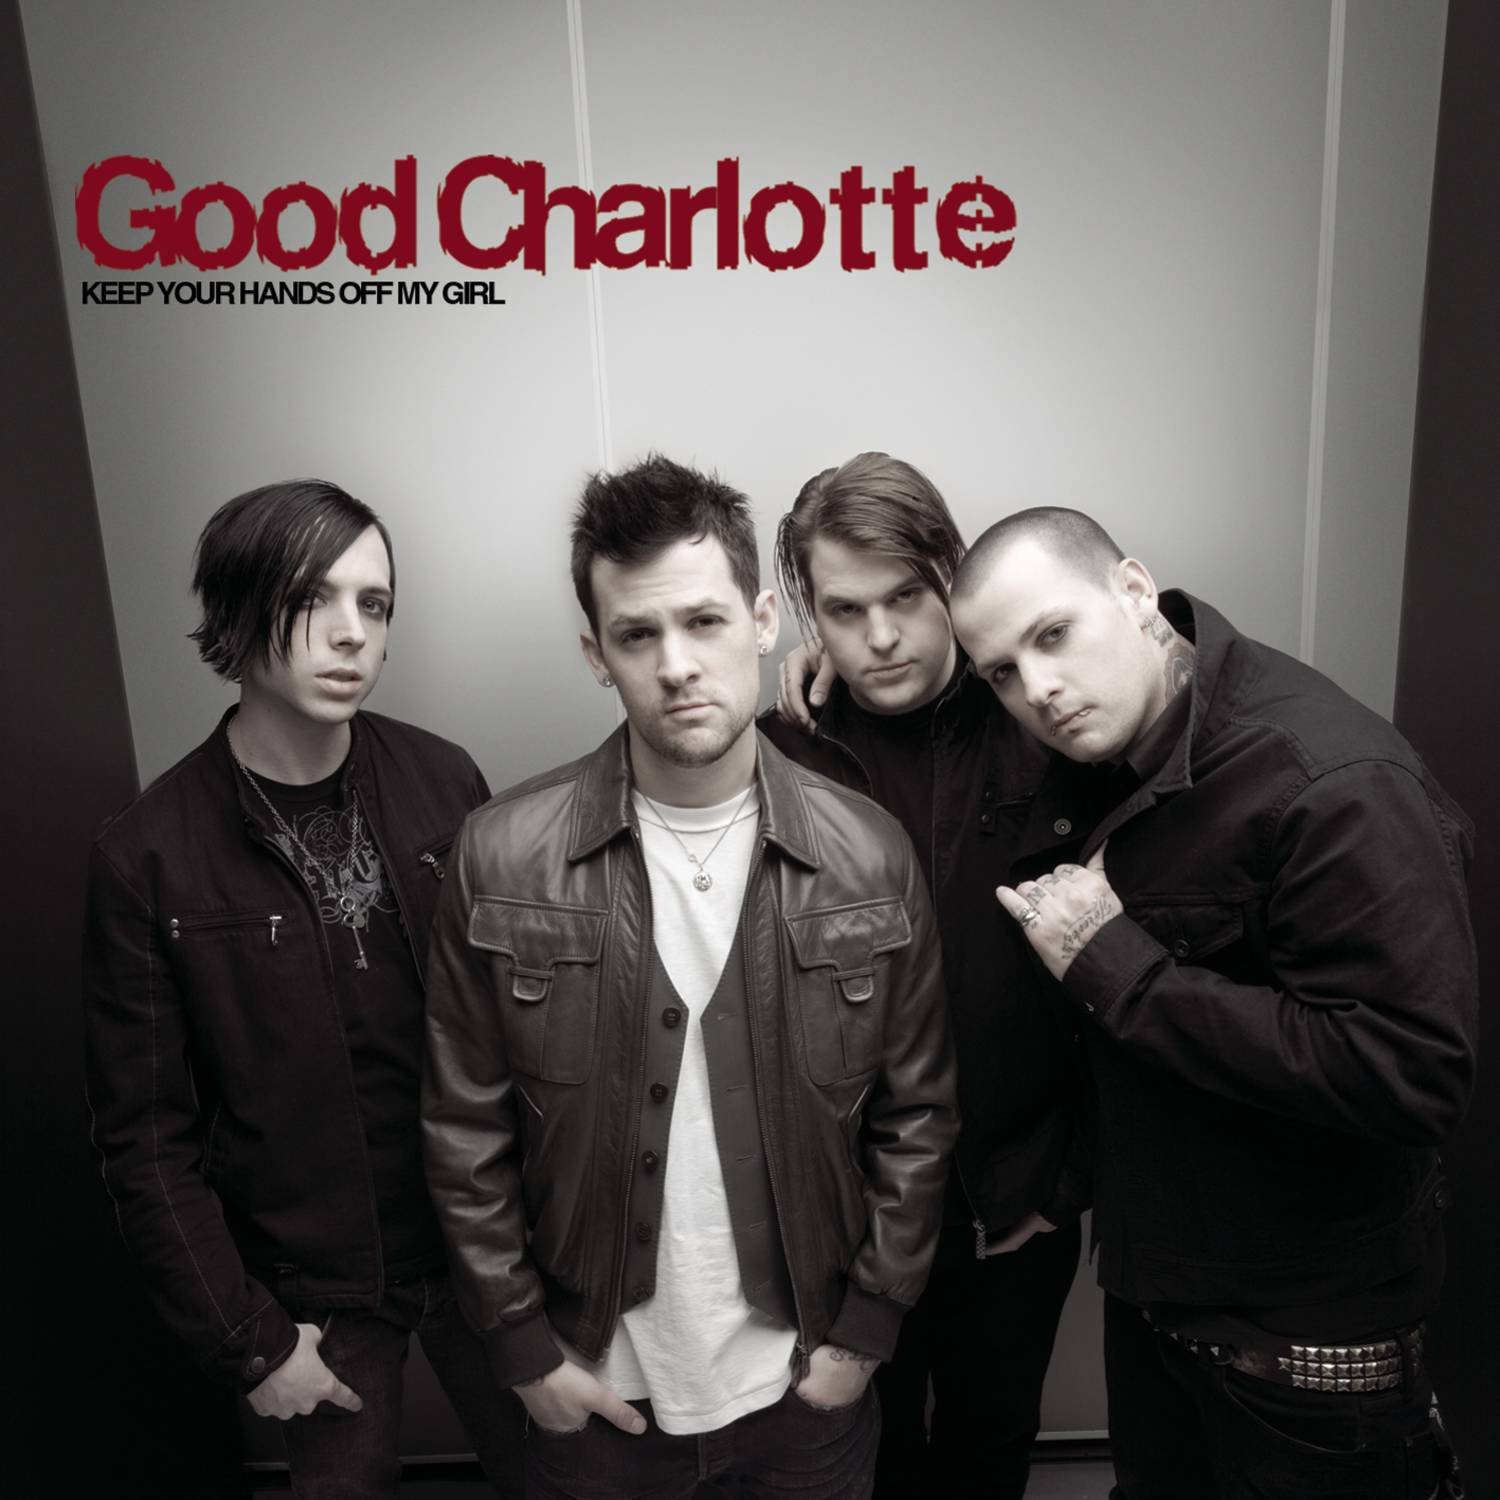 Good Charlotte album Keep Your Hands Off My Girl